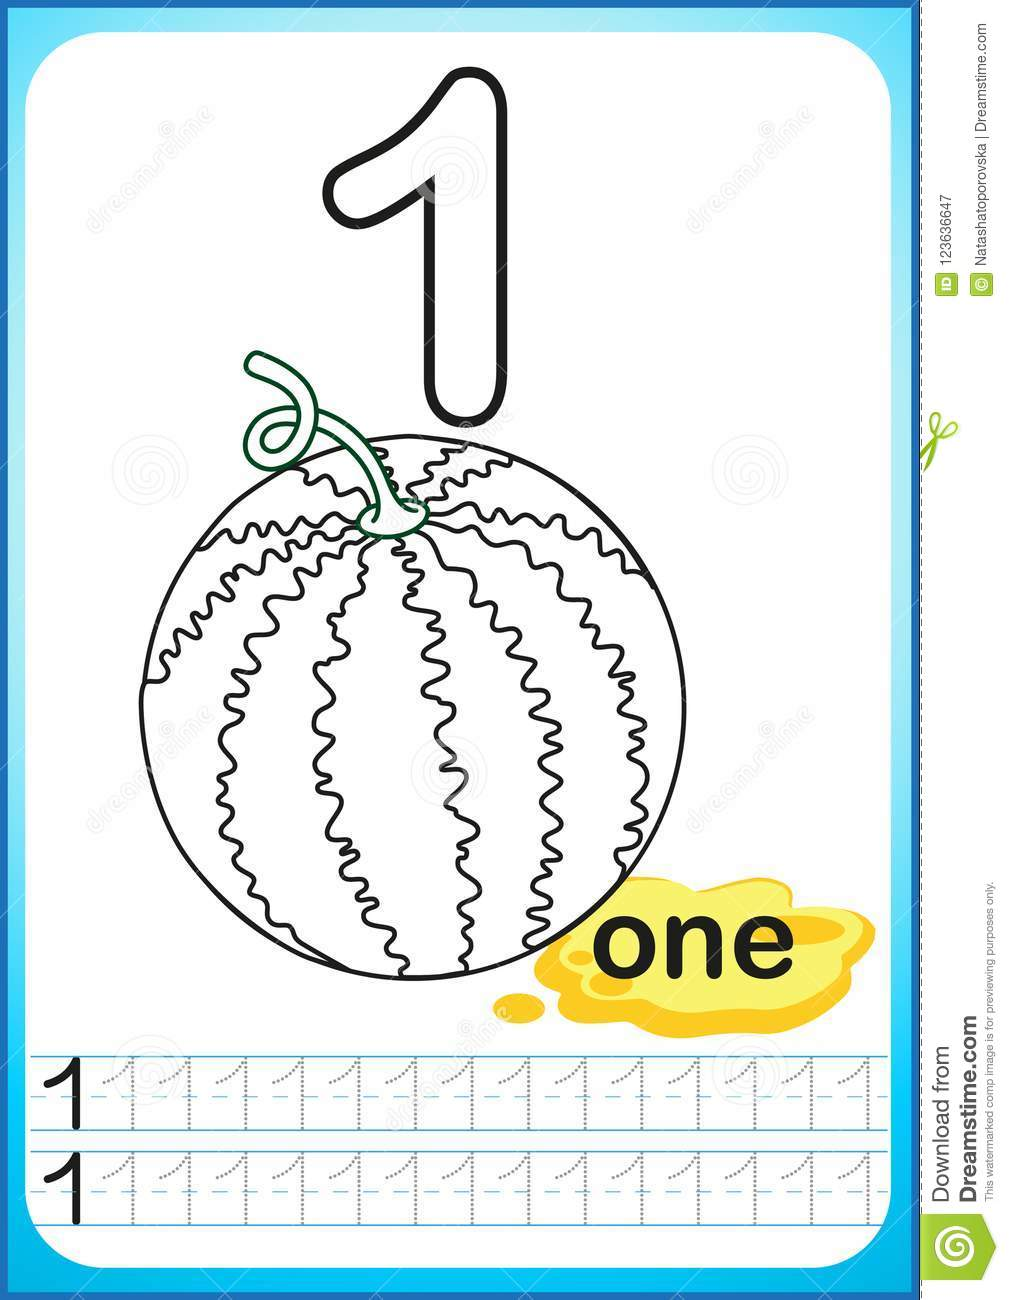 Printable worksheet for kindergarten and preschool. Exercises for writing numbers. Simple level of difficulty. Restore dashed line